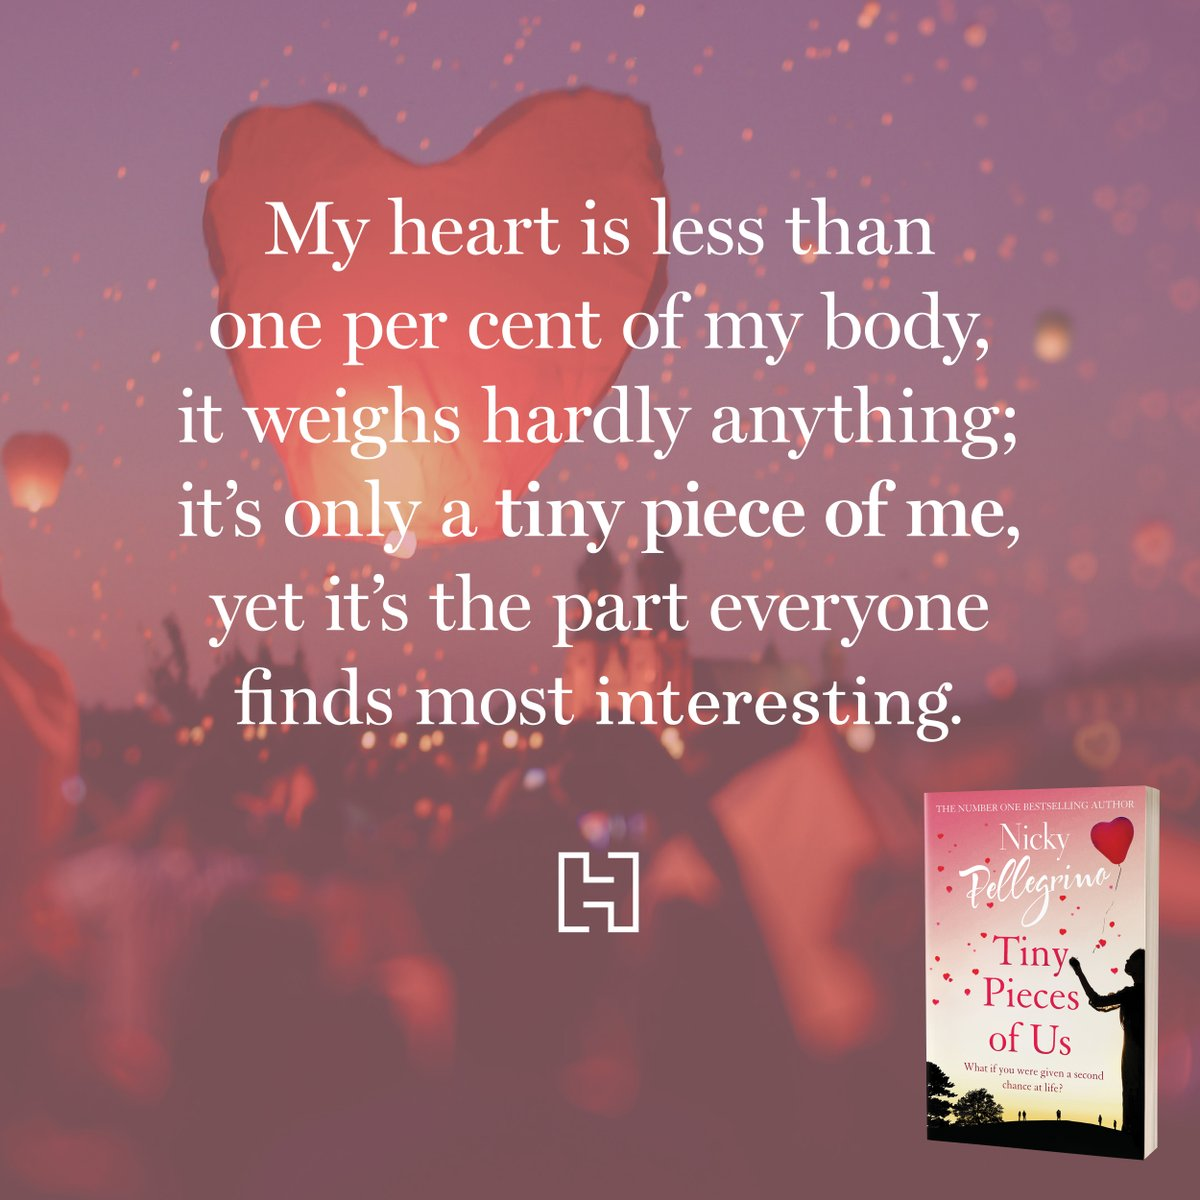 From #1 bestselling author @nickypellegrino comes a magnificent novel about the unexpected ways in which our lives weave and tangle, and the bravery we find in the most difficult circumstances. TINY PIECES OF US is out now! https://t.co/xlOTxr1vA6 https://t.co/Luq0TM2New